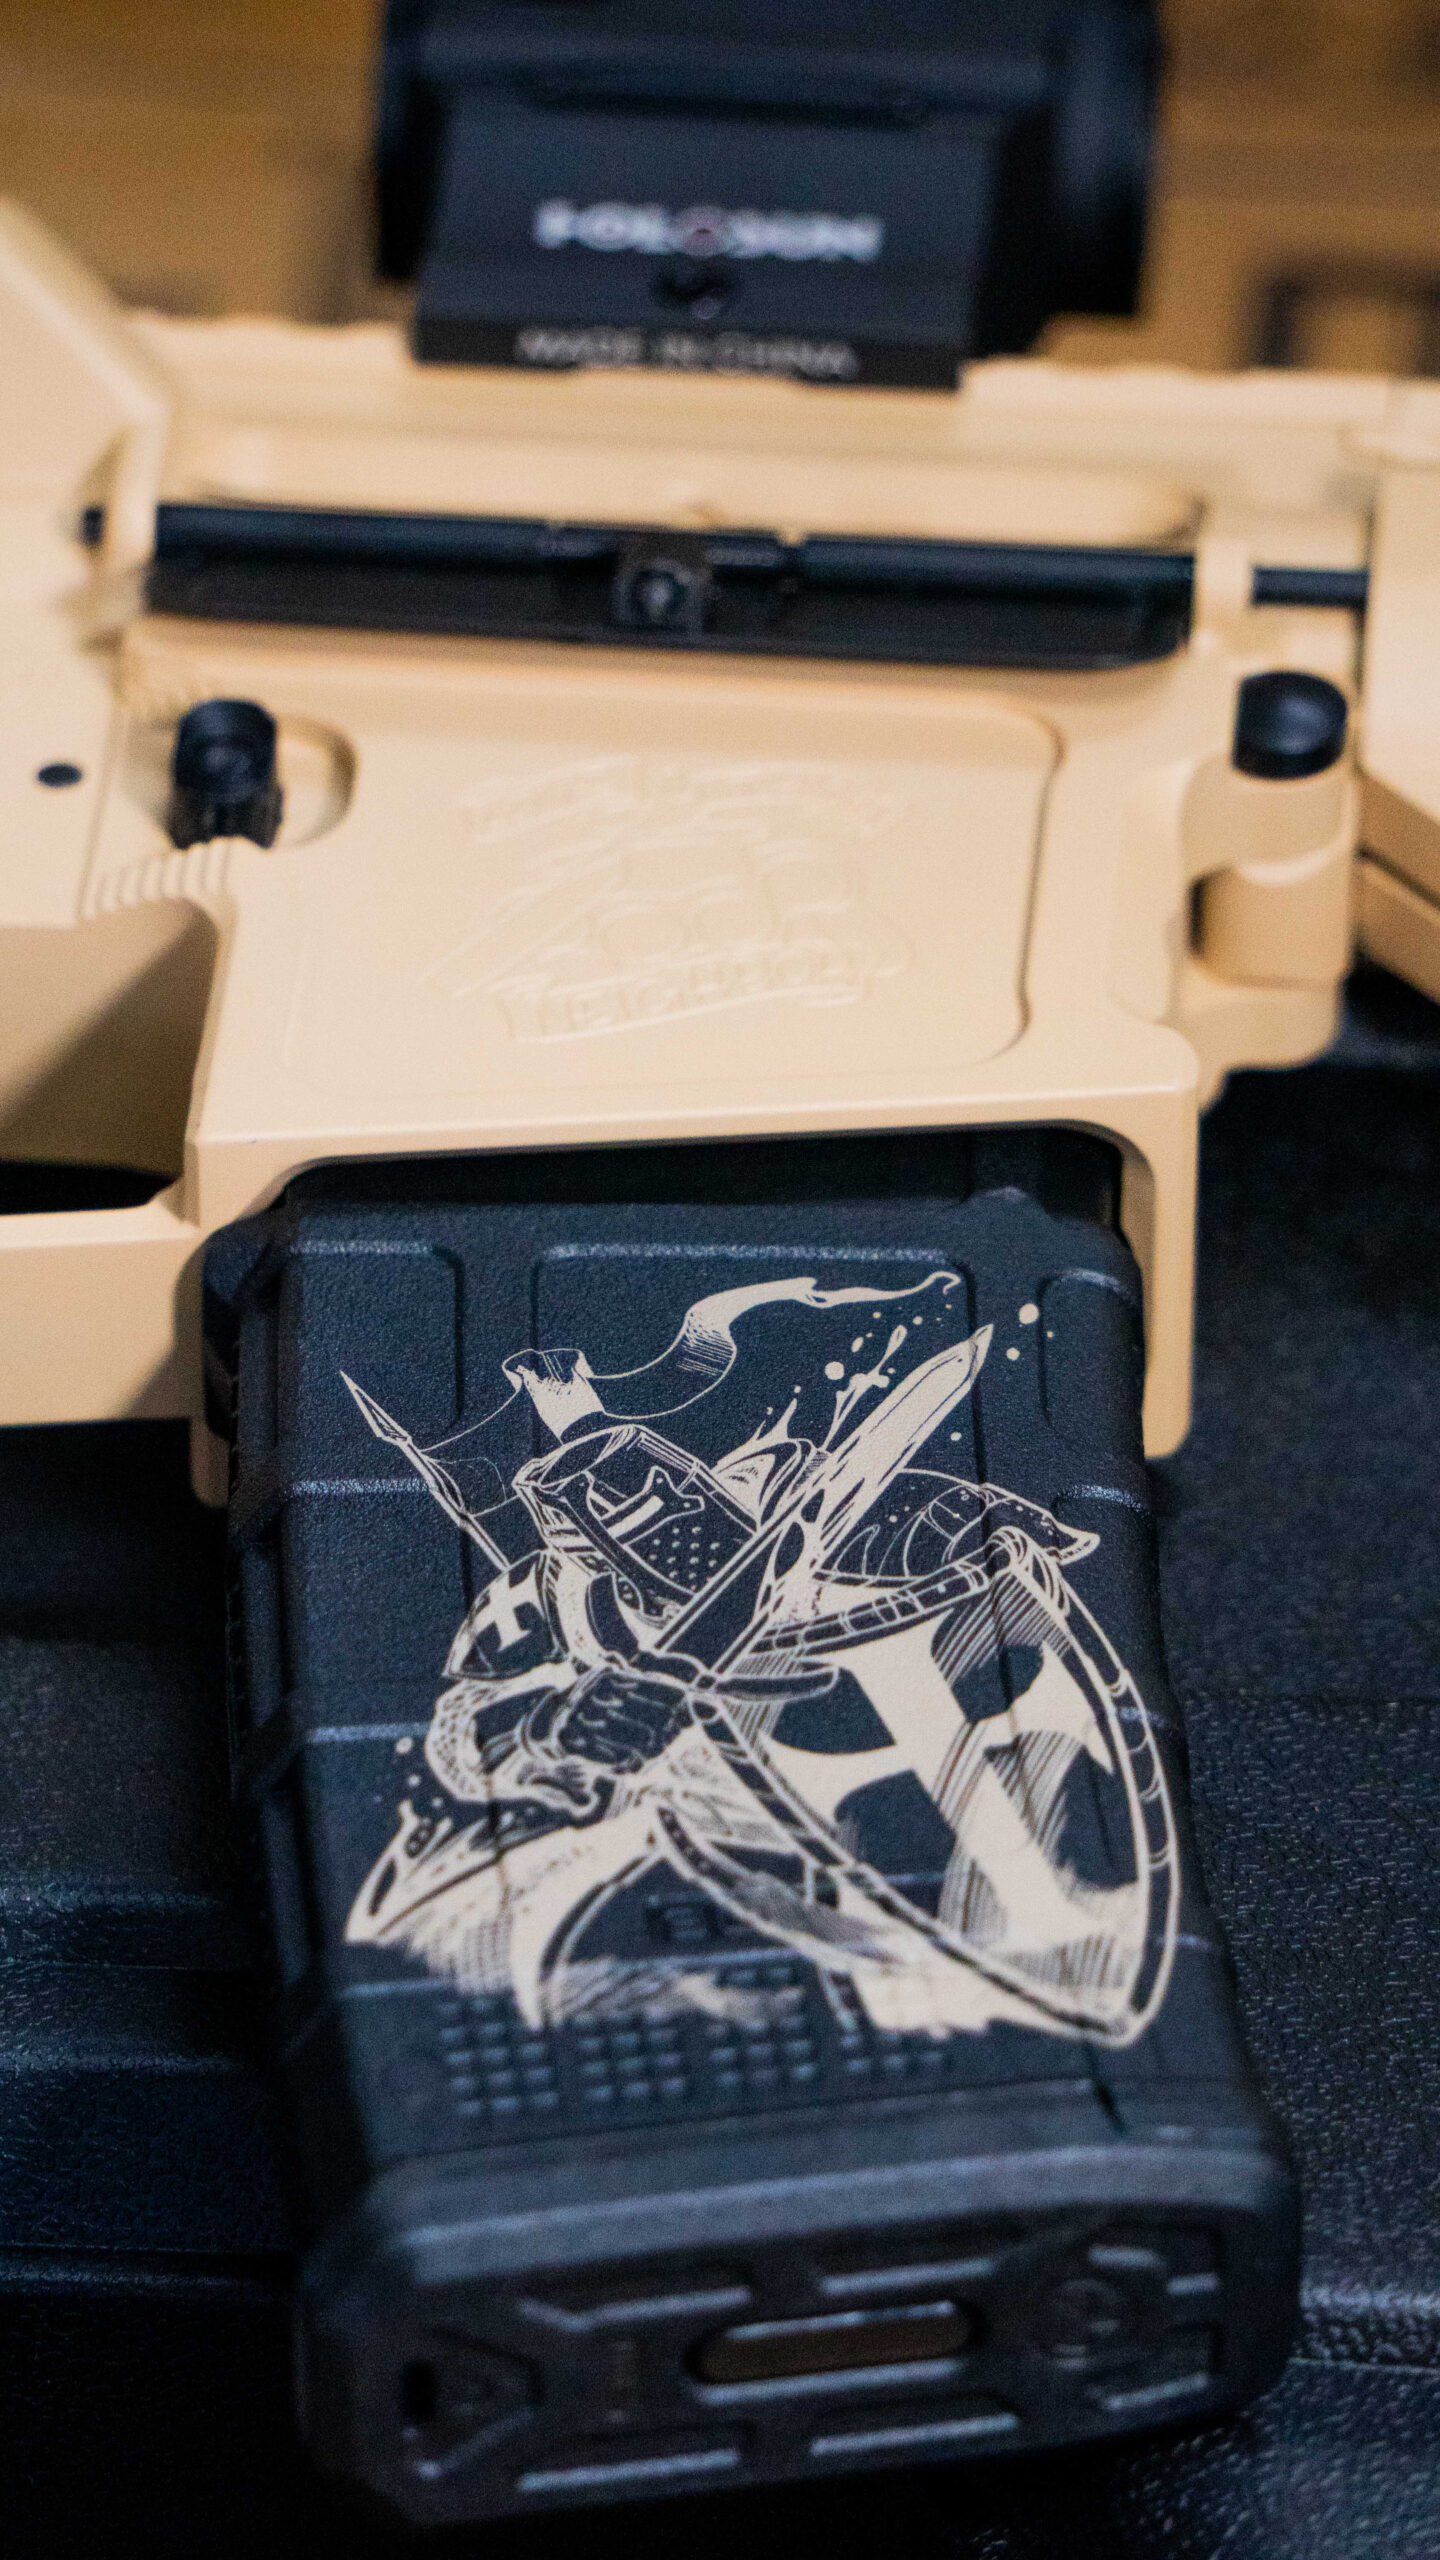 Crusader magazine decal